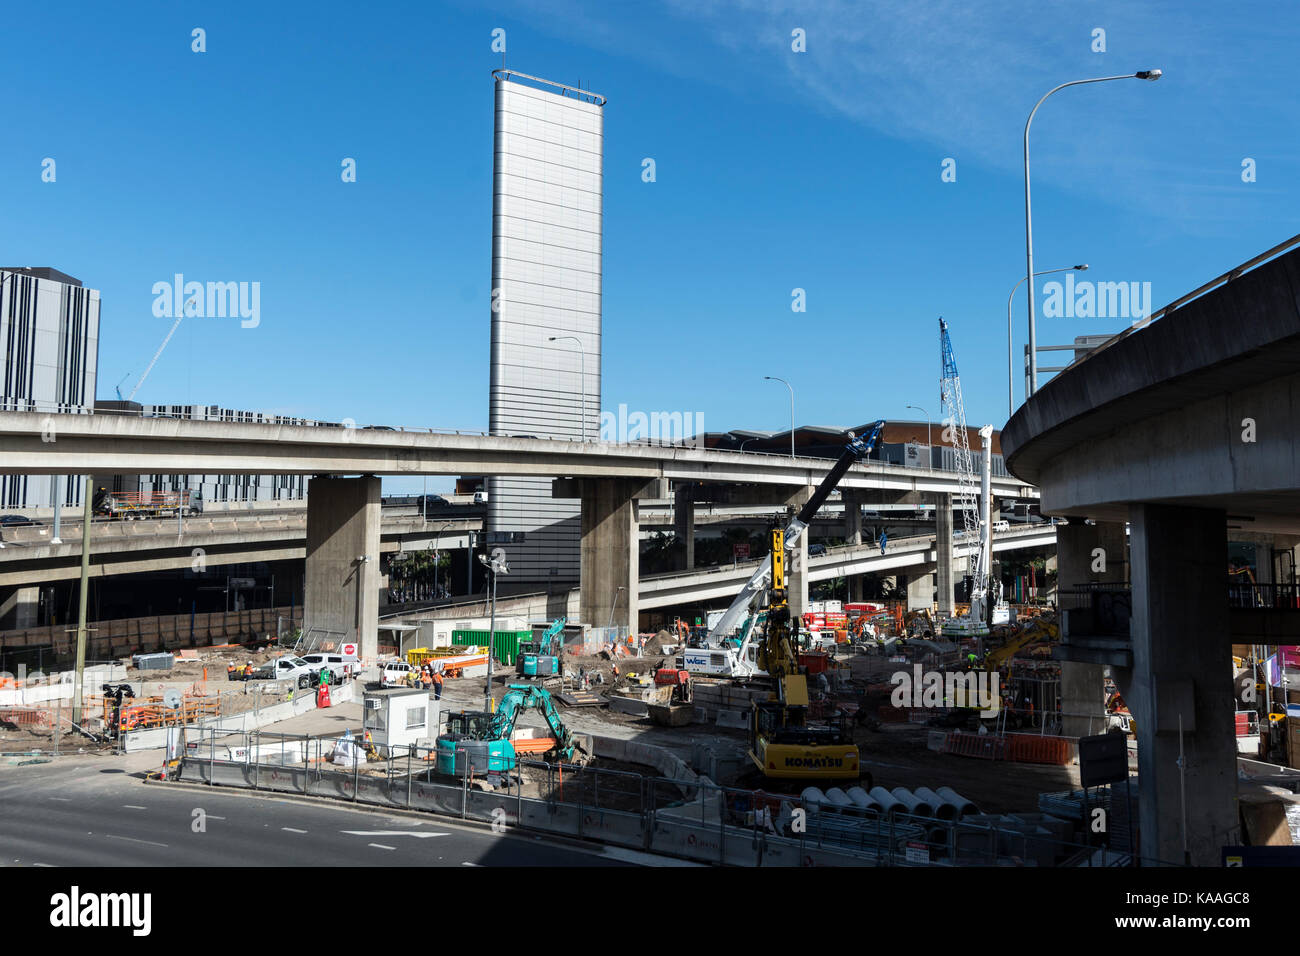 Redevelopment at the end of Cockle Bay next to Darling Harbour in Sydney, New South Wales, Australia - Stock Image